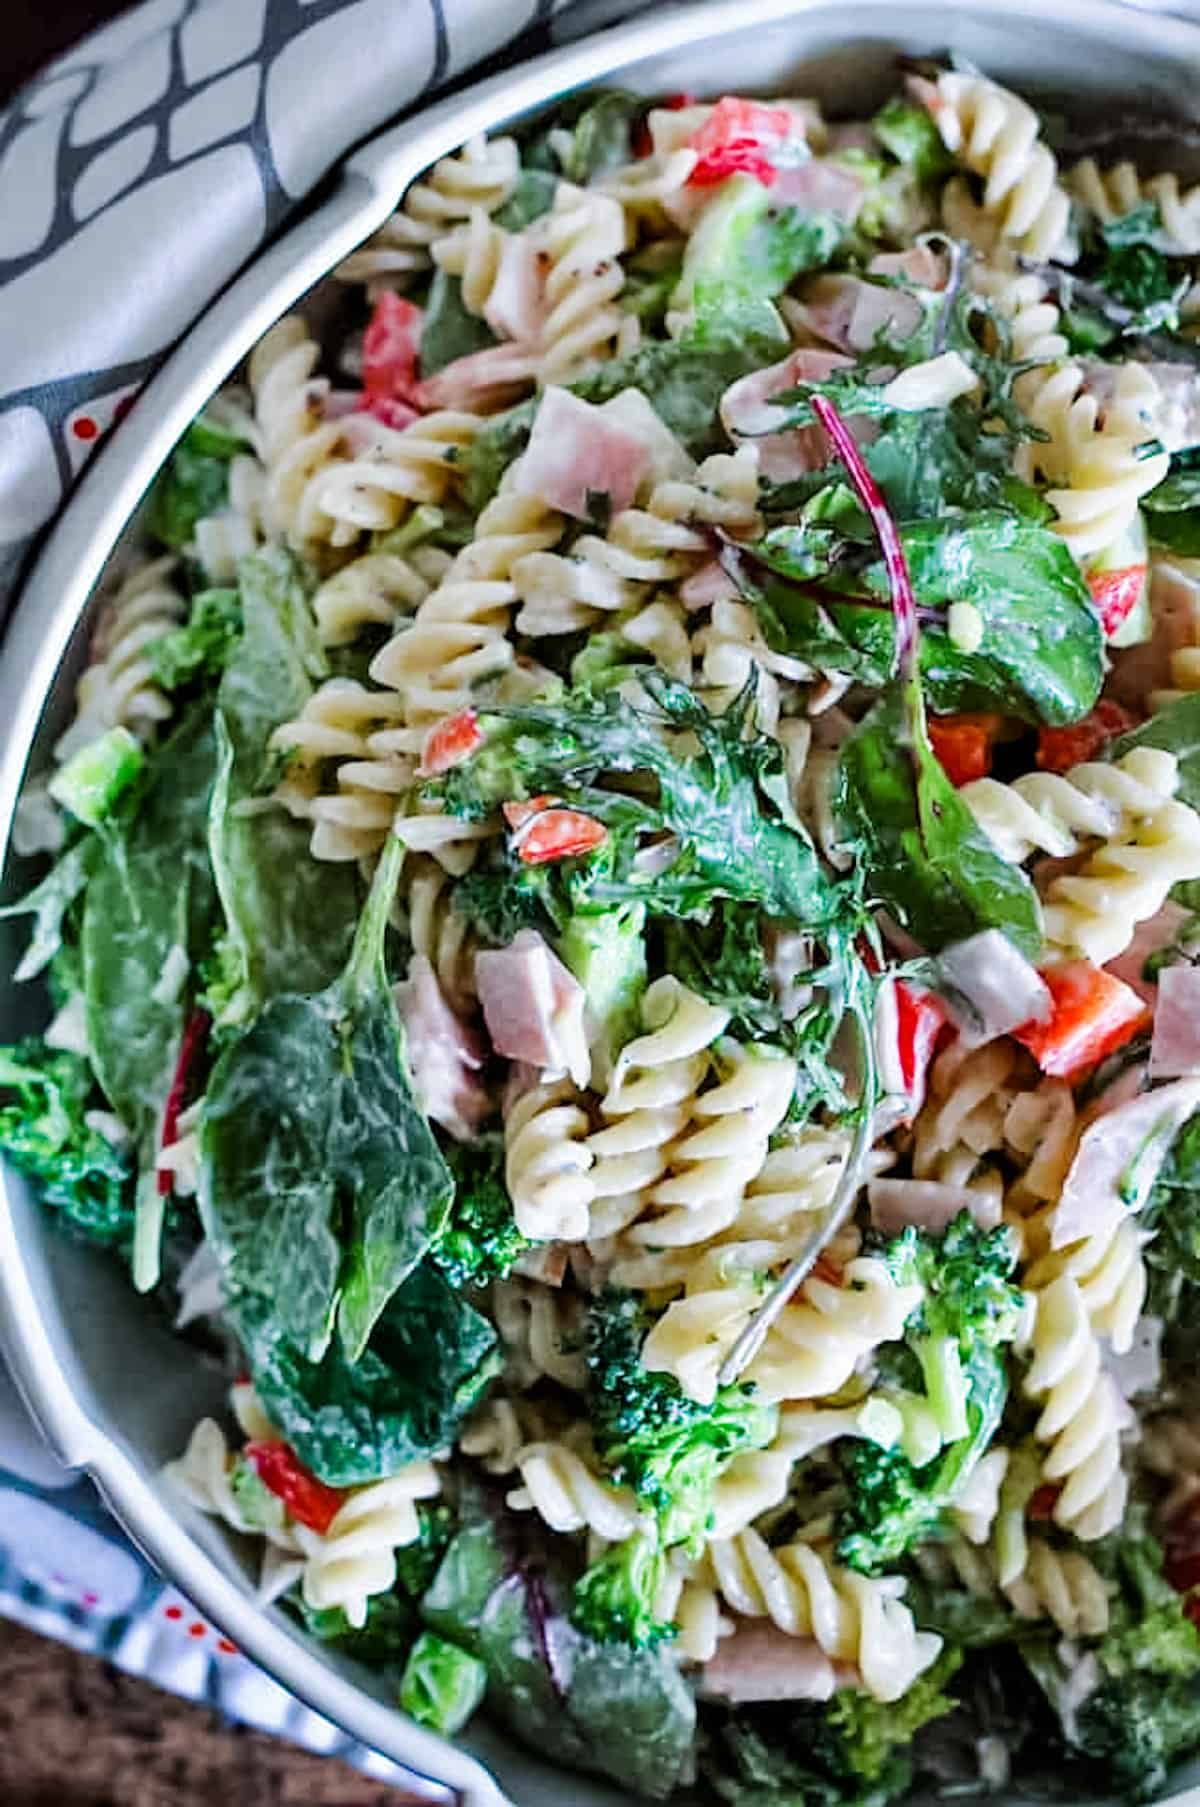 An image of leftover ham recipes using the ham to make pasta salad. This is a close up shot of pasta salad with broccoli.